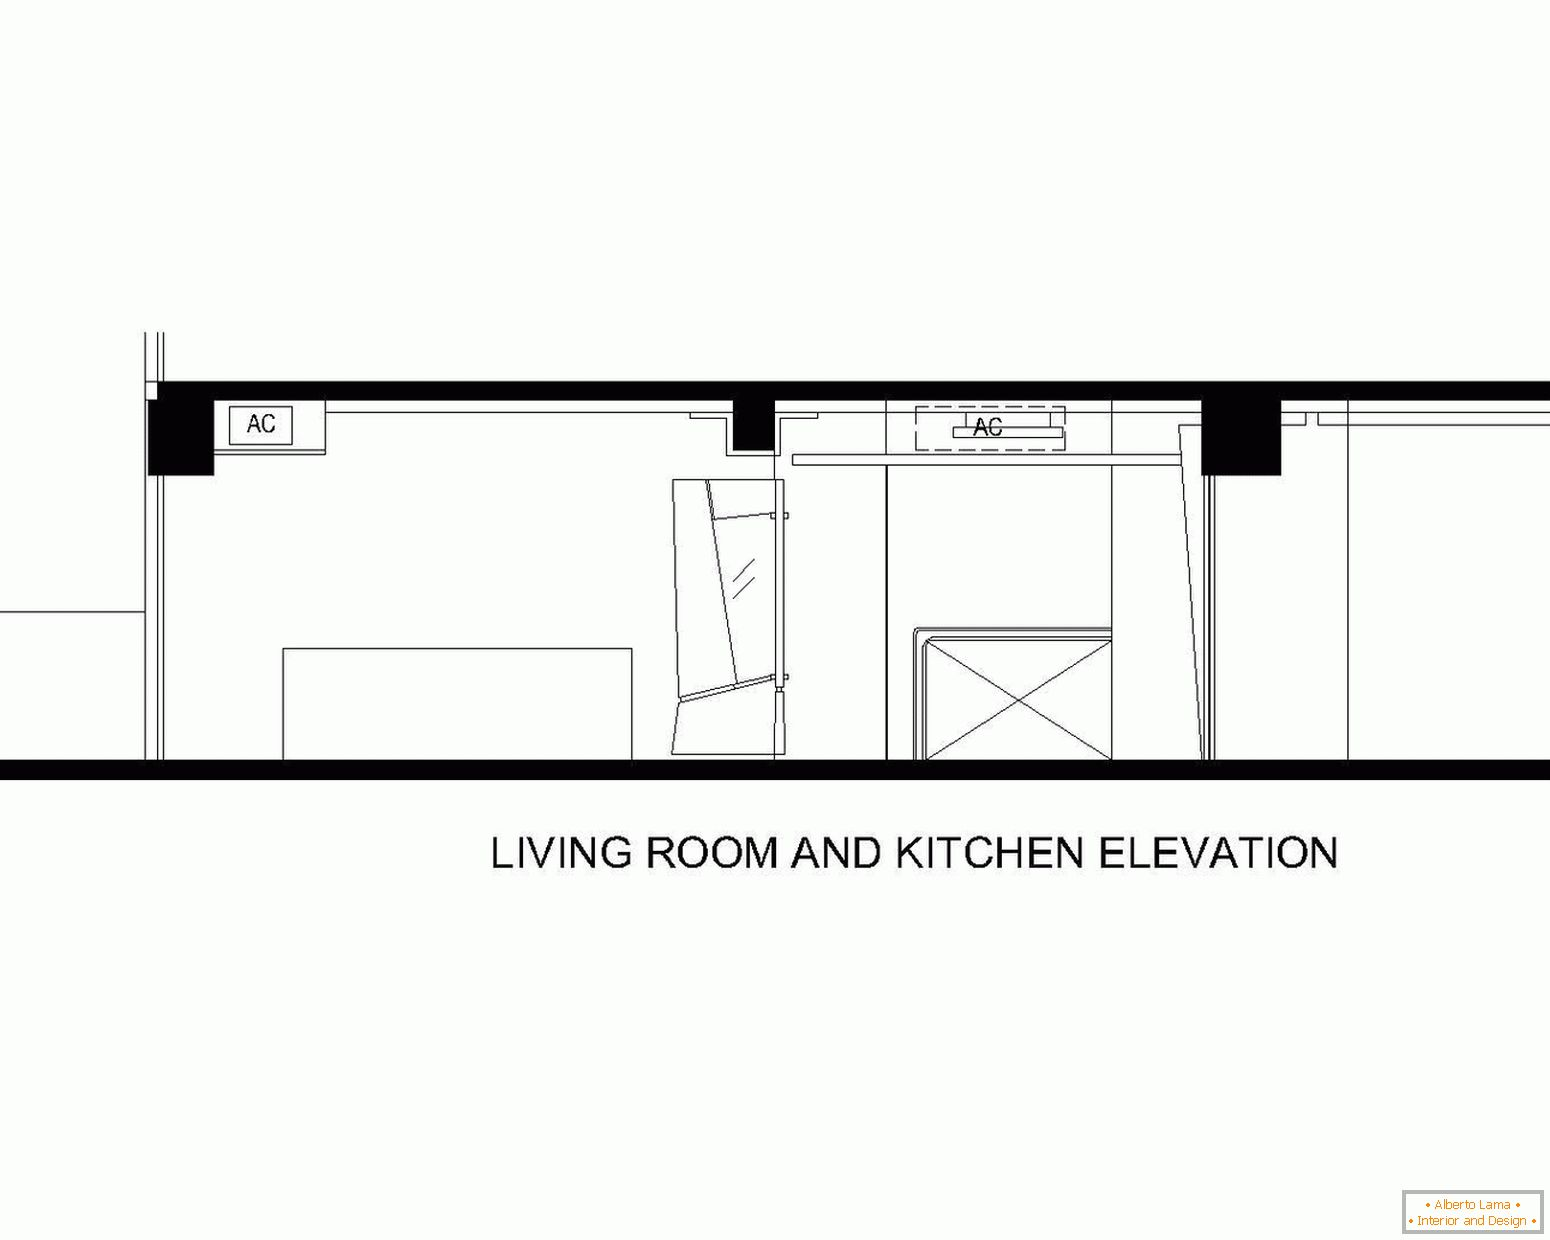 Layout of the living room and kitchen